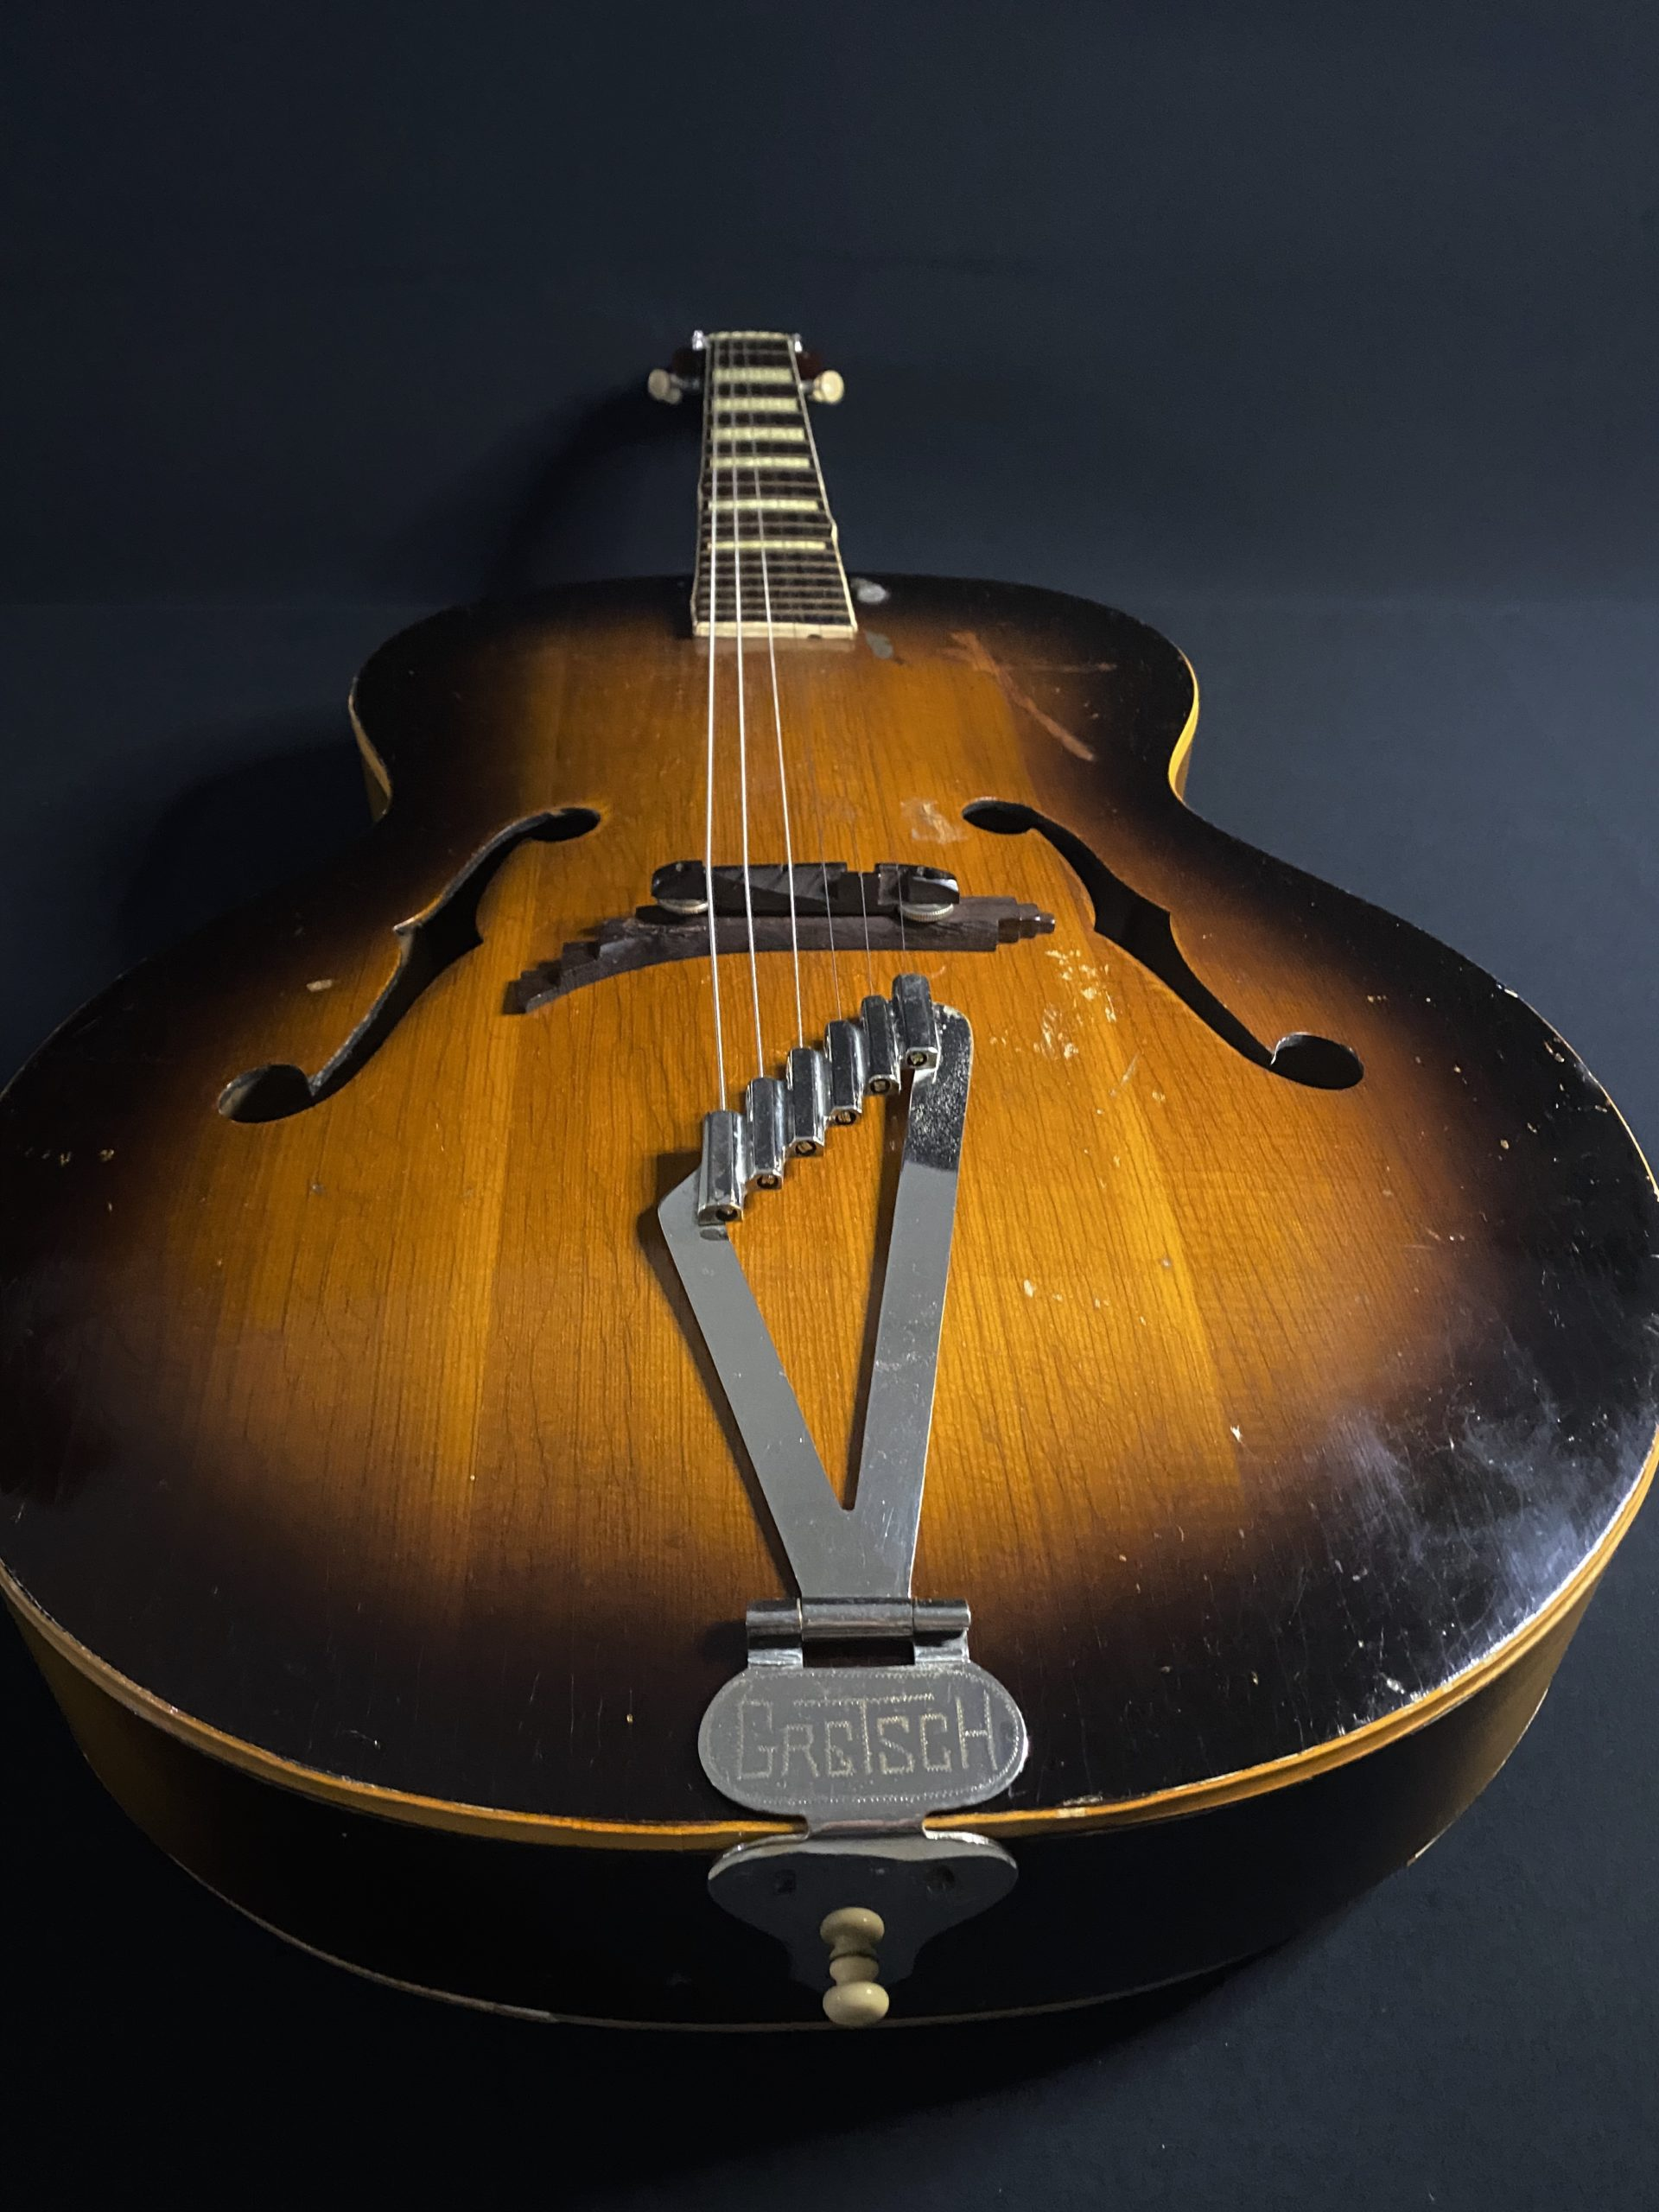 1952 Gretsch Synchromatic Archtop Vintage Guitar 07